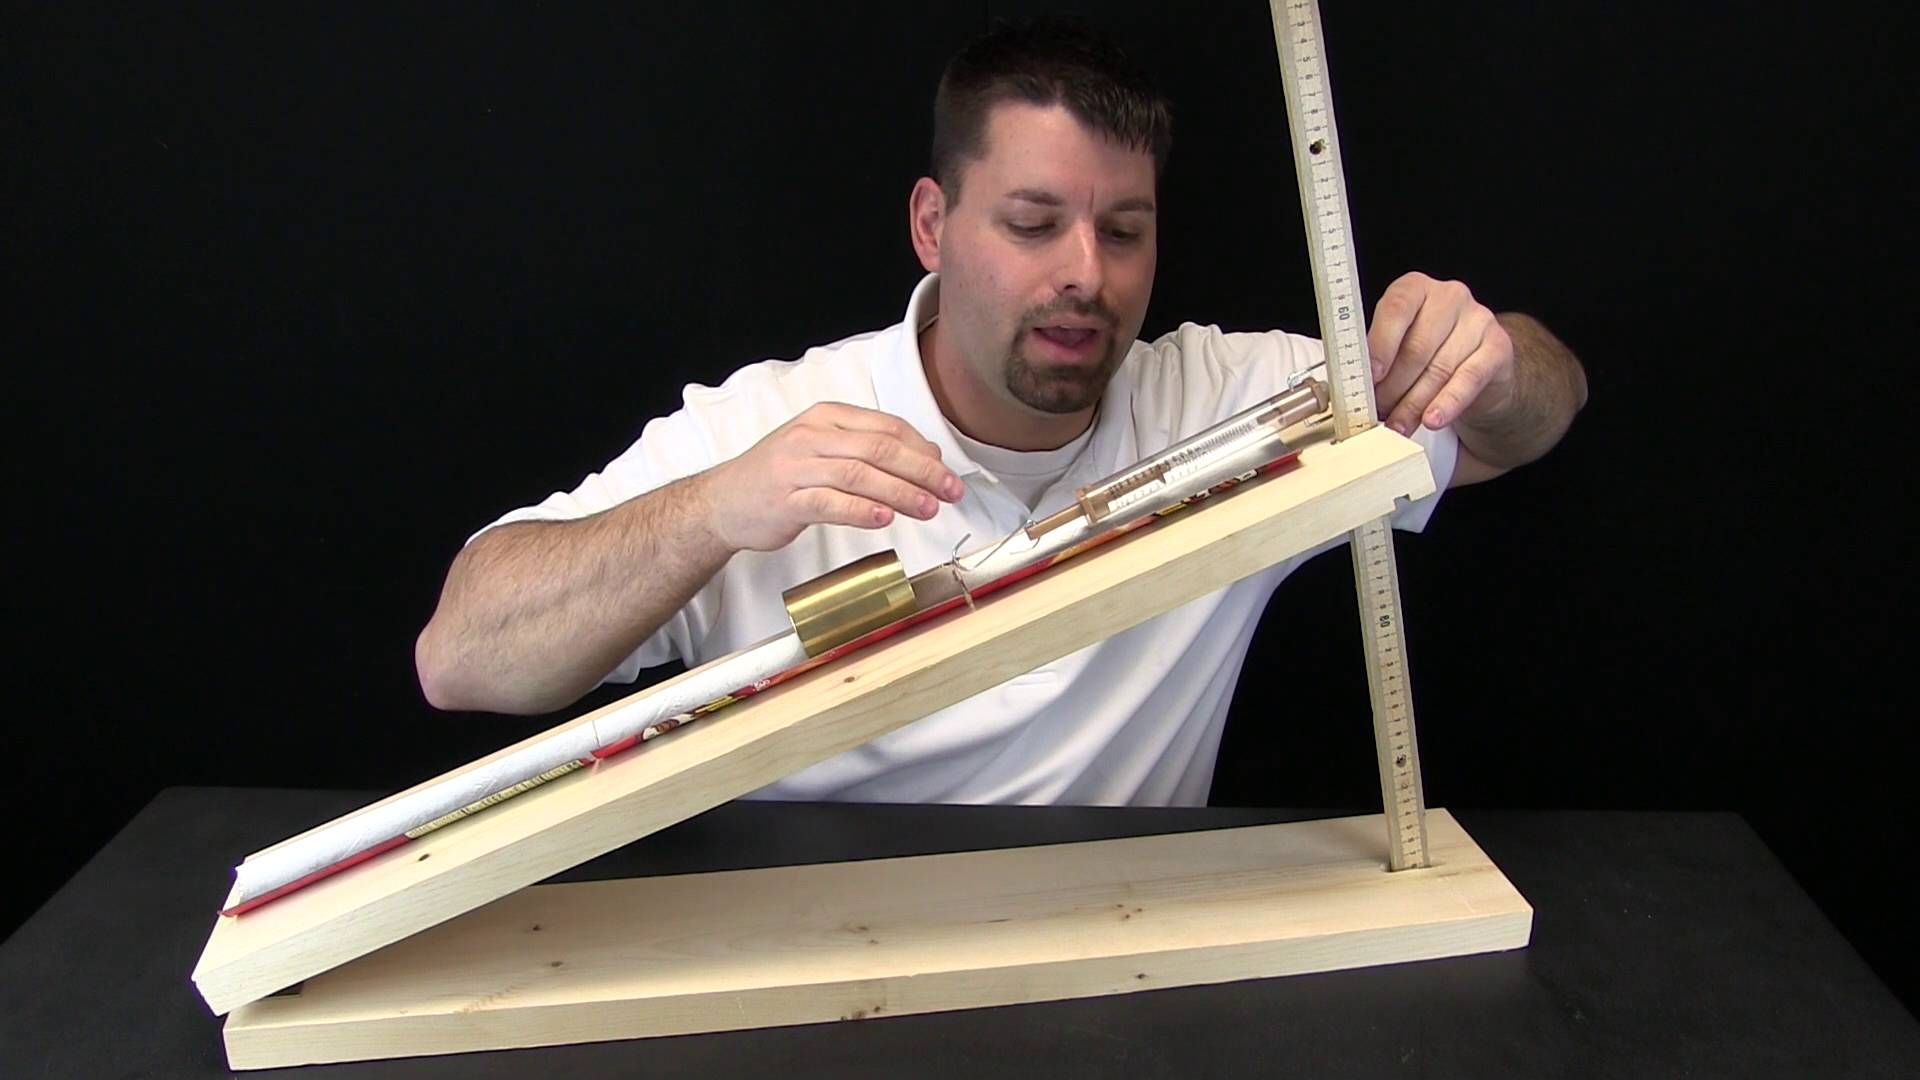 Simple Machines The Inclined Plane